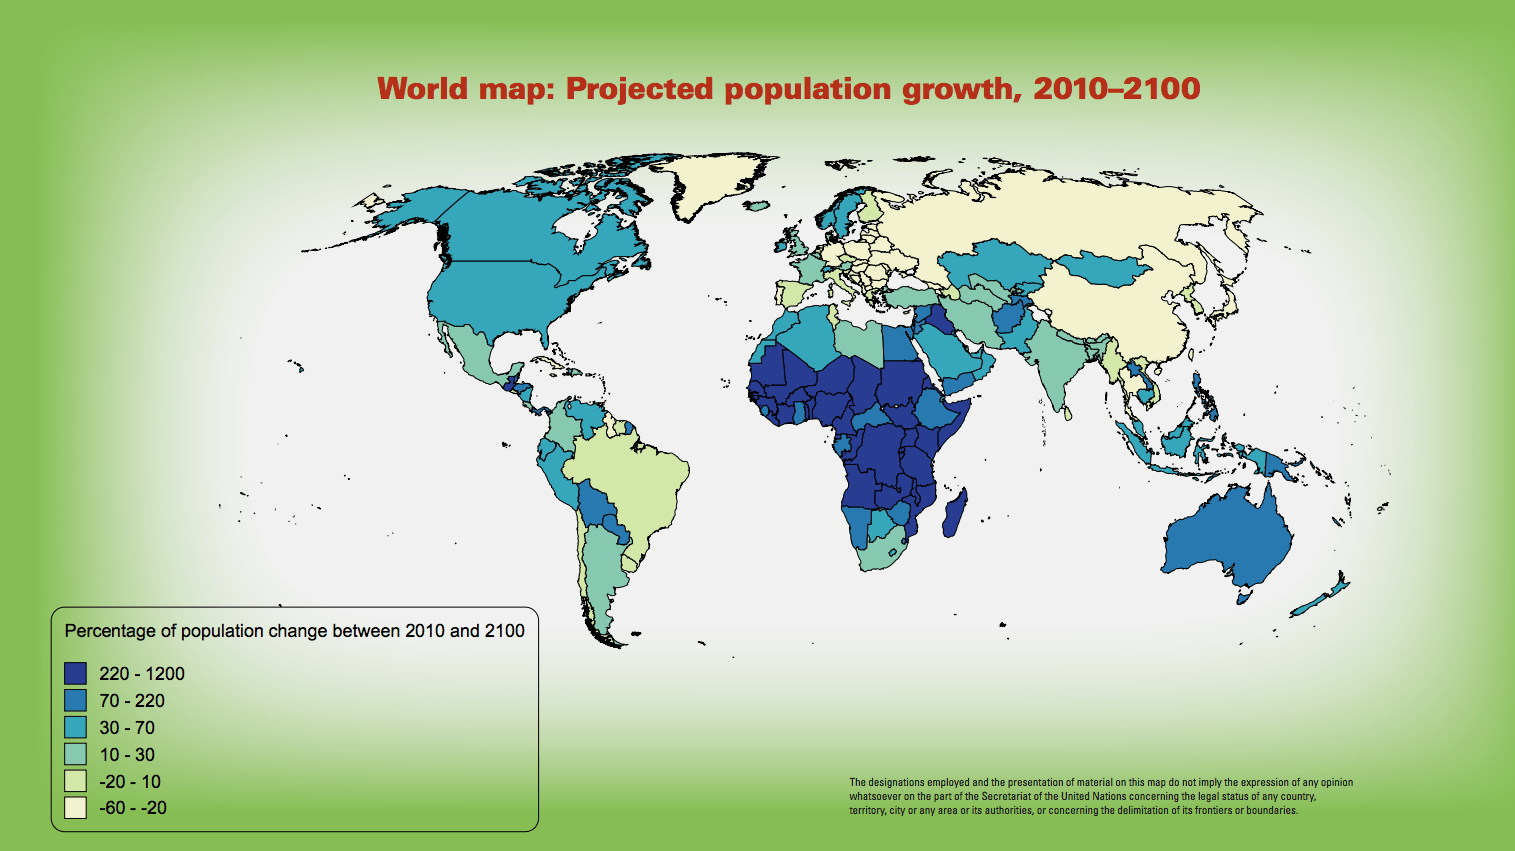 World Population Expected To Rise Rapidly This Century